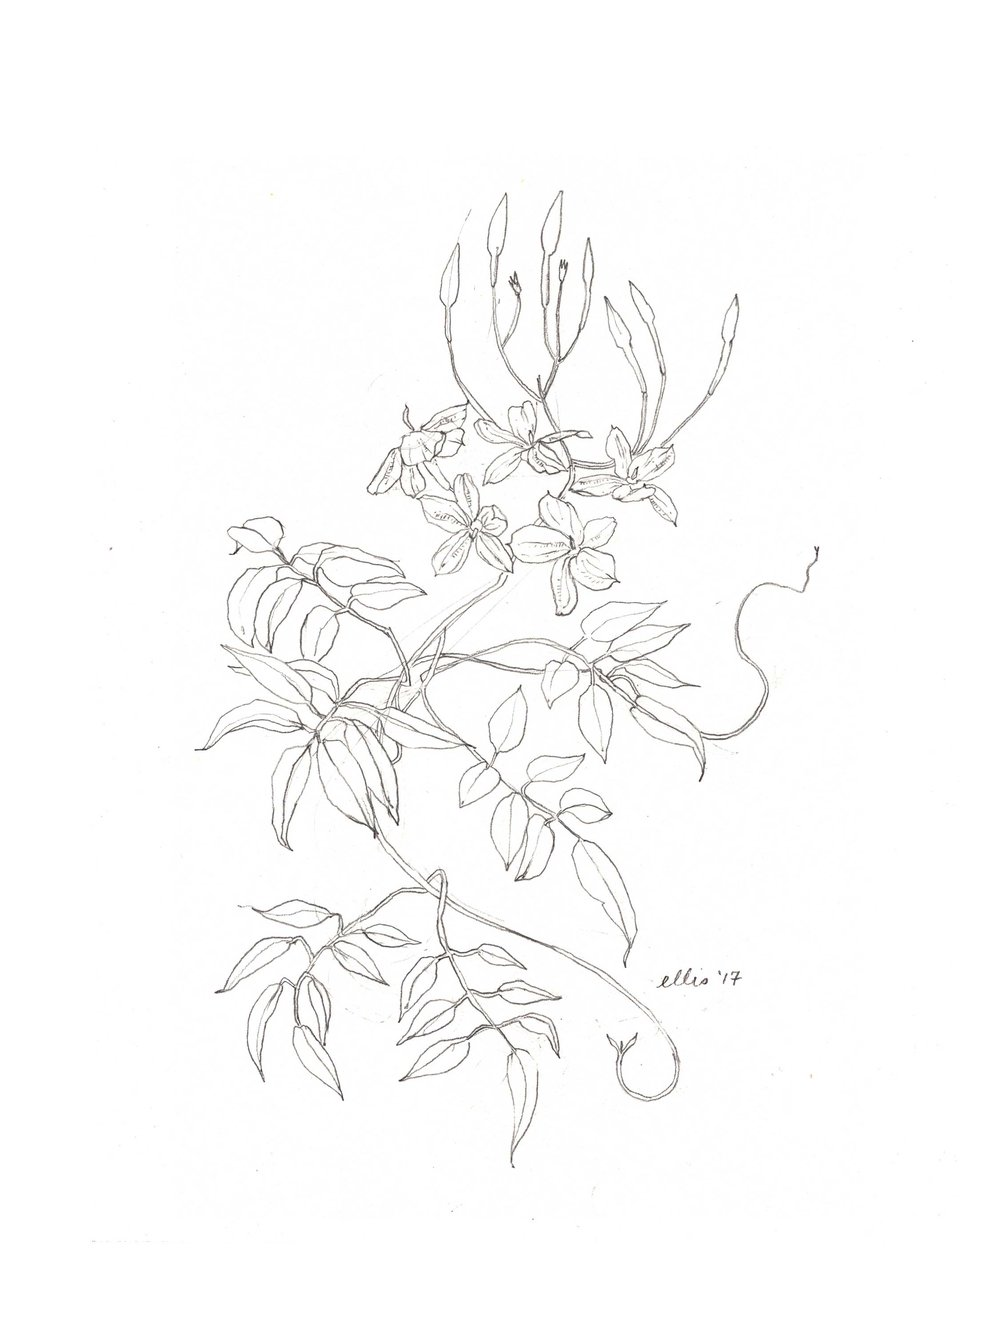 erin-ellis-jasmine-vine-illustration-bw.jpg